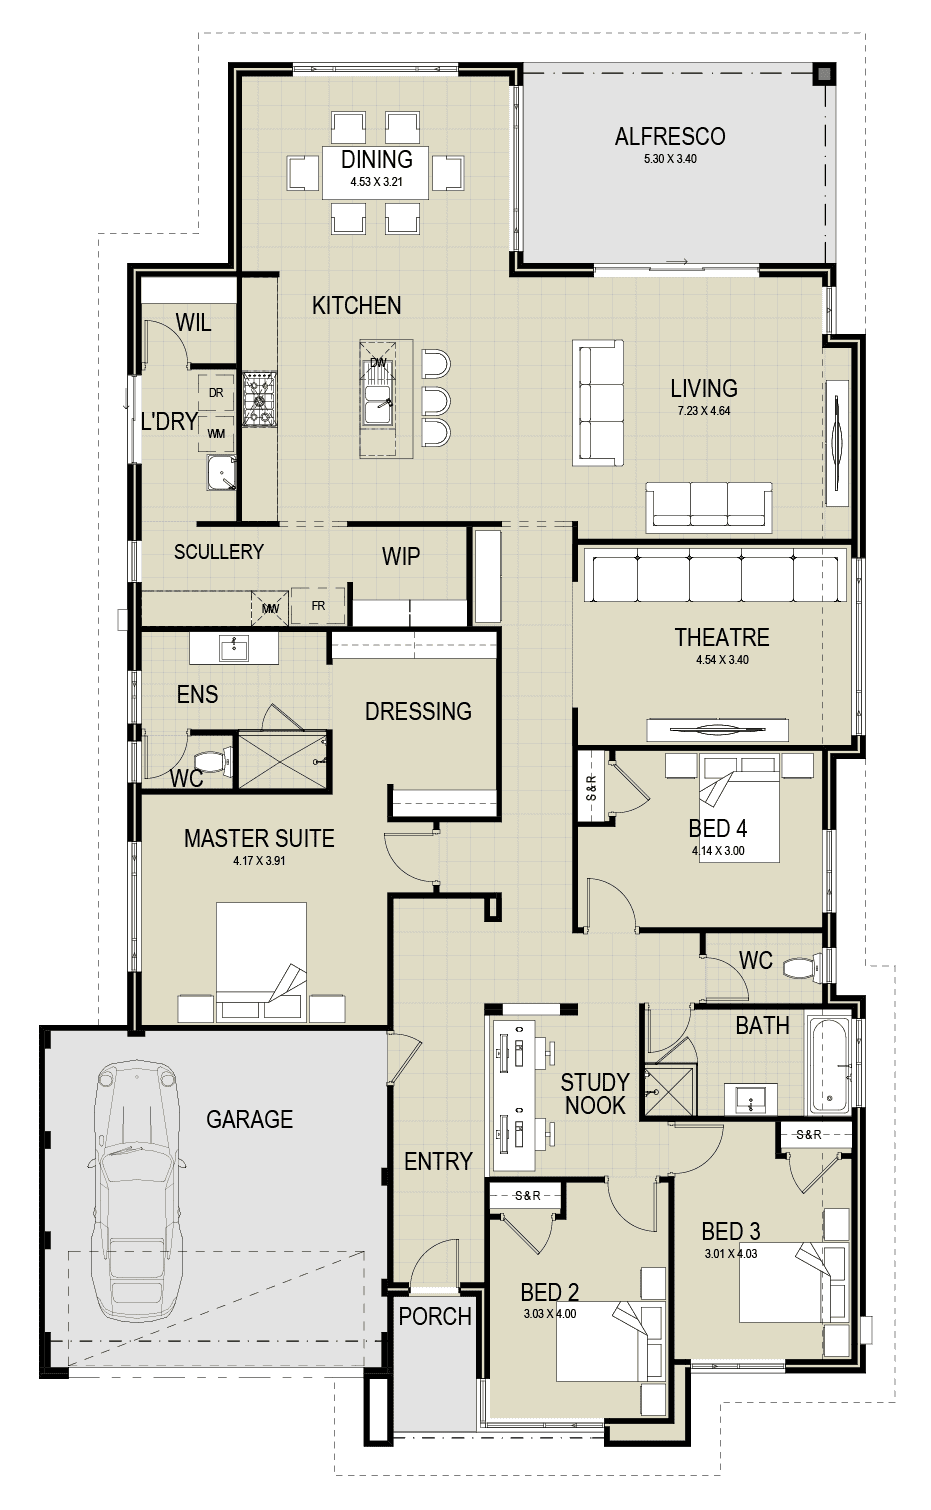 The Monaco floor plan